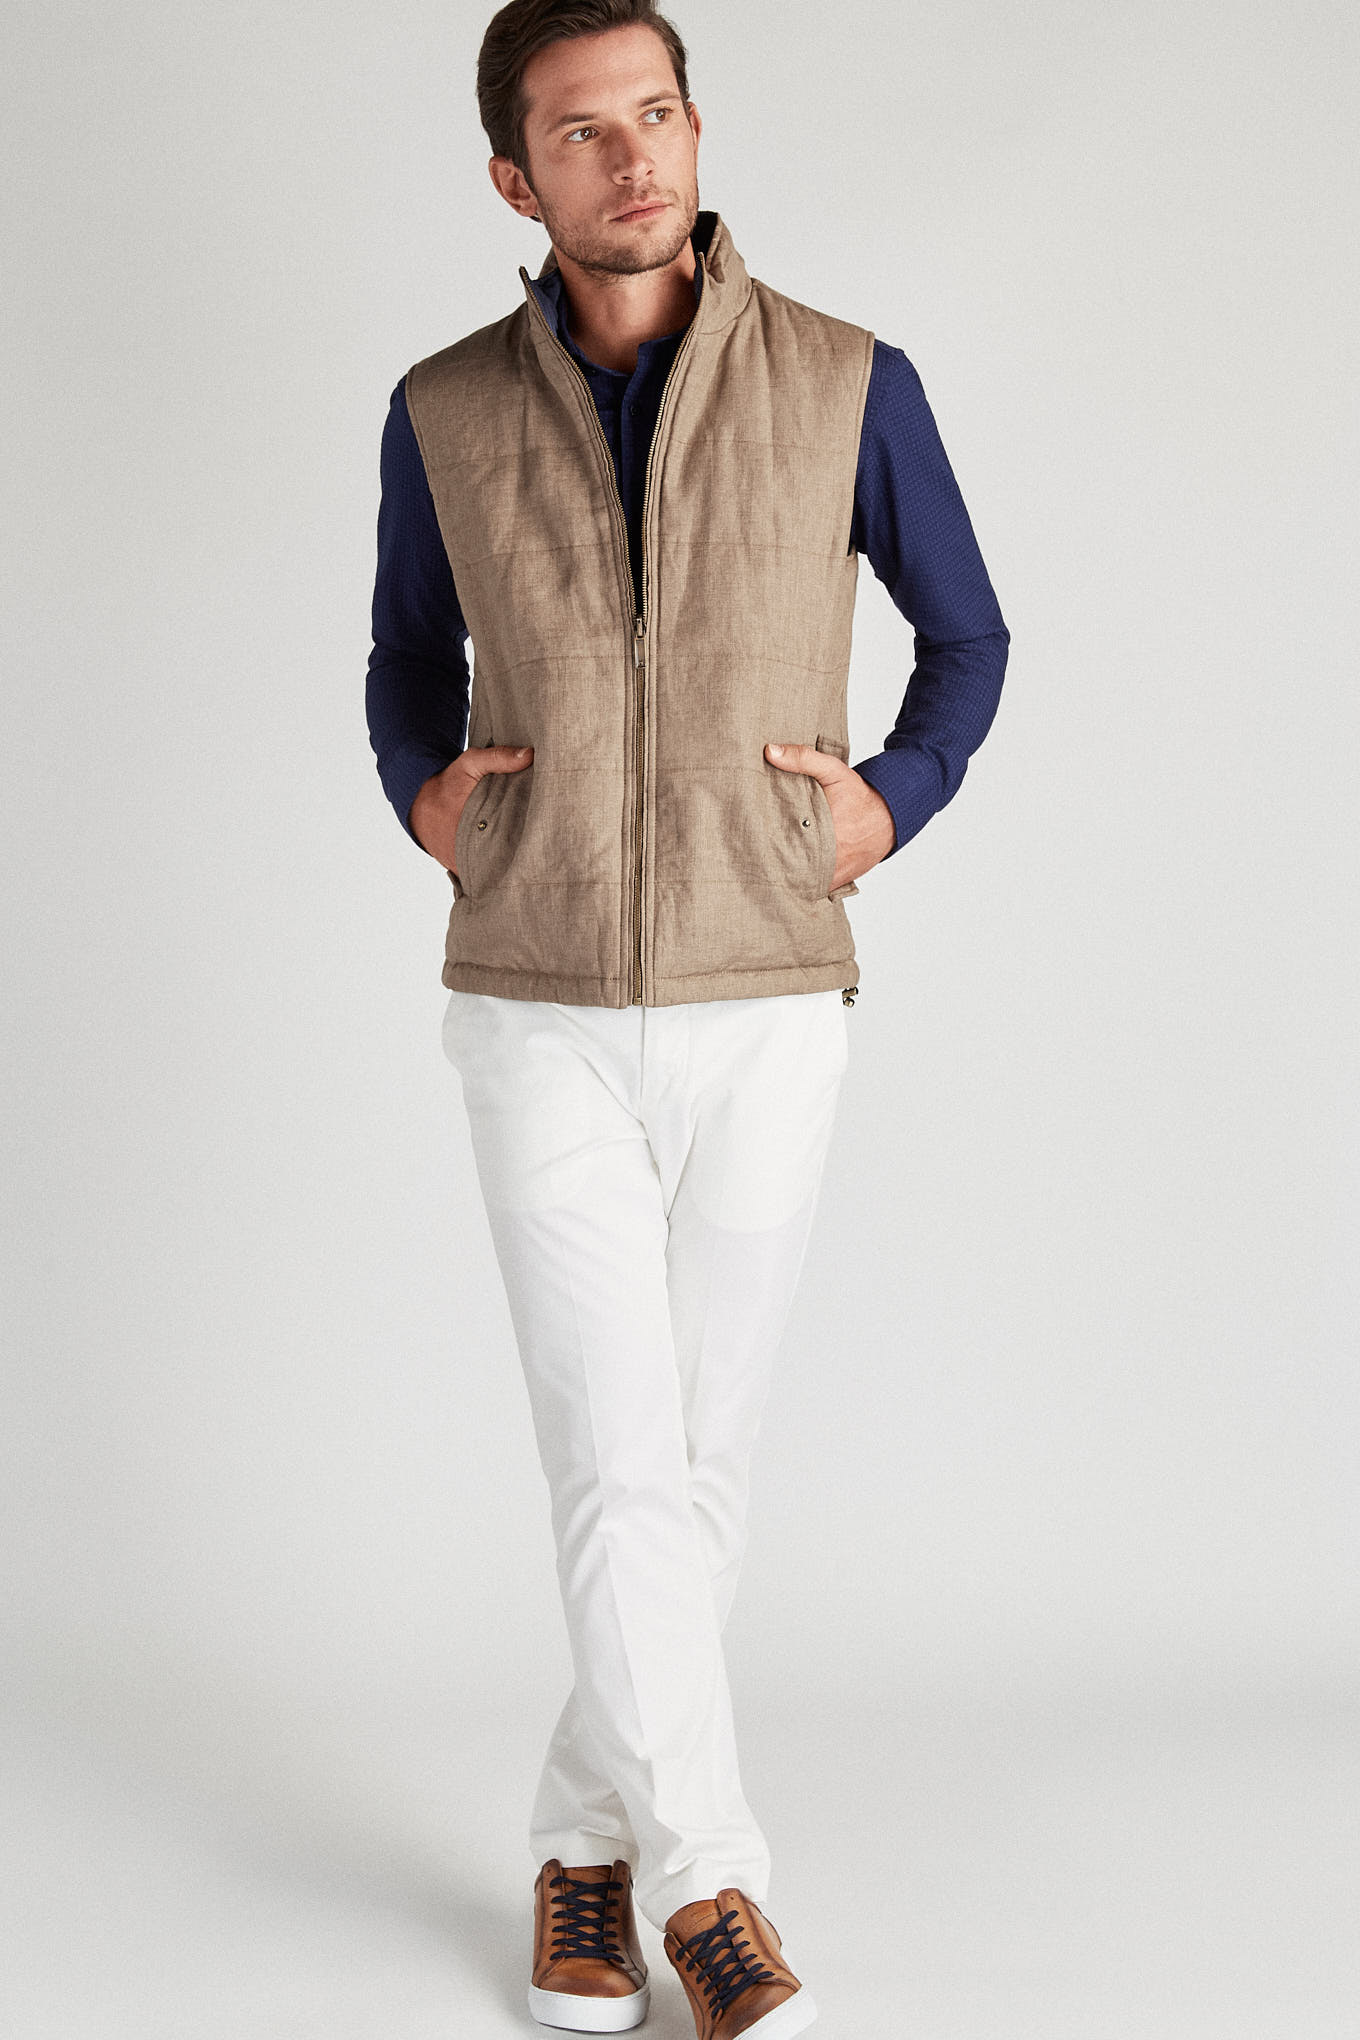 Waist Coat Dark Beige Casual Man